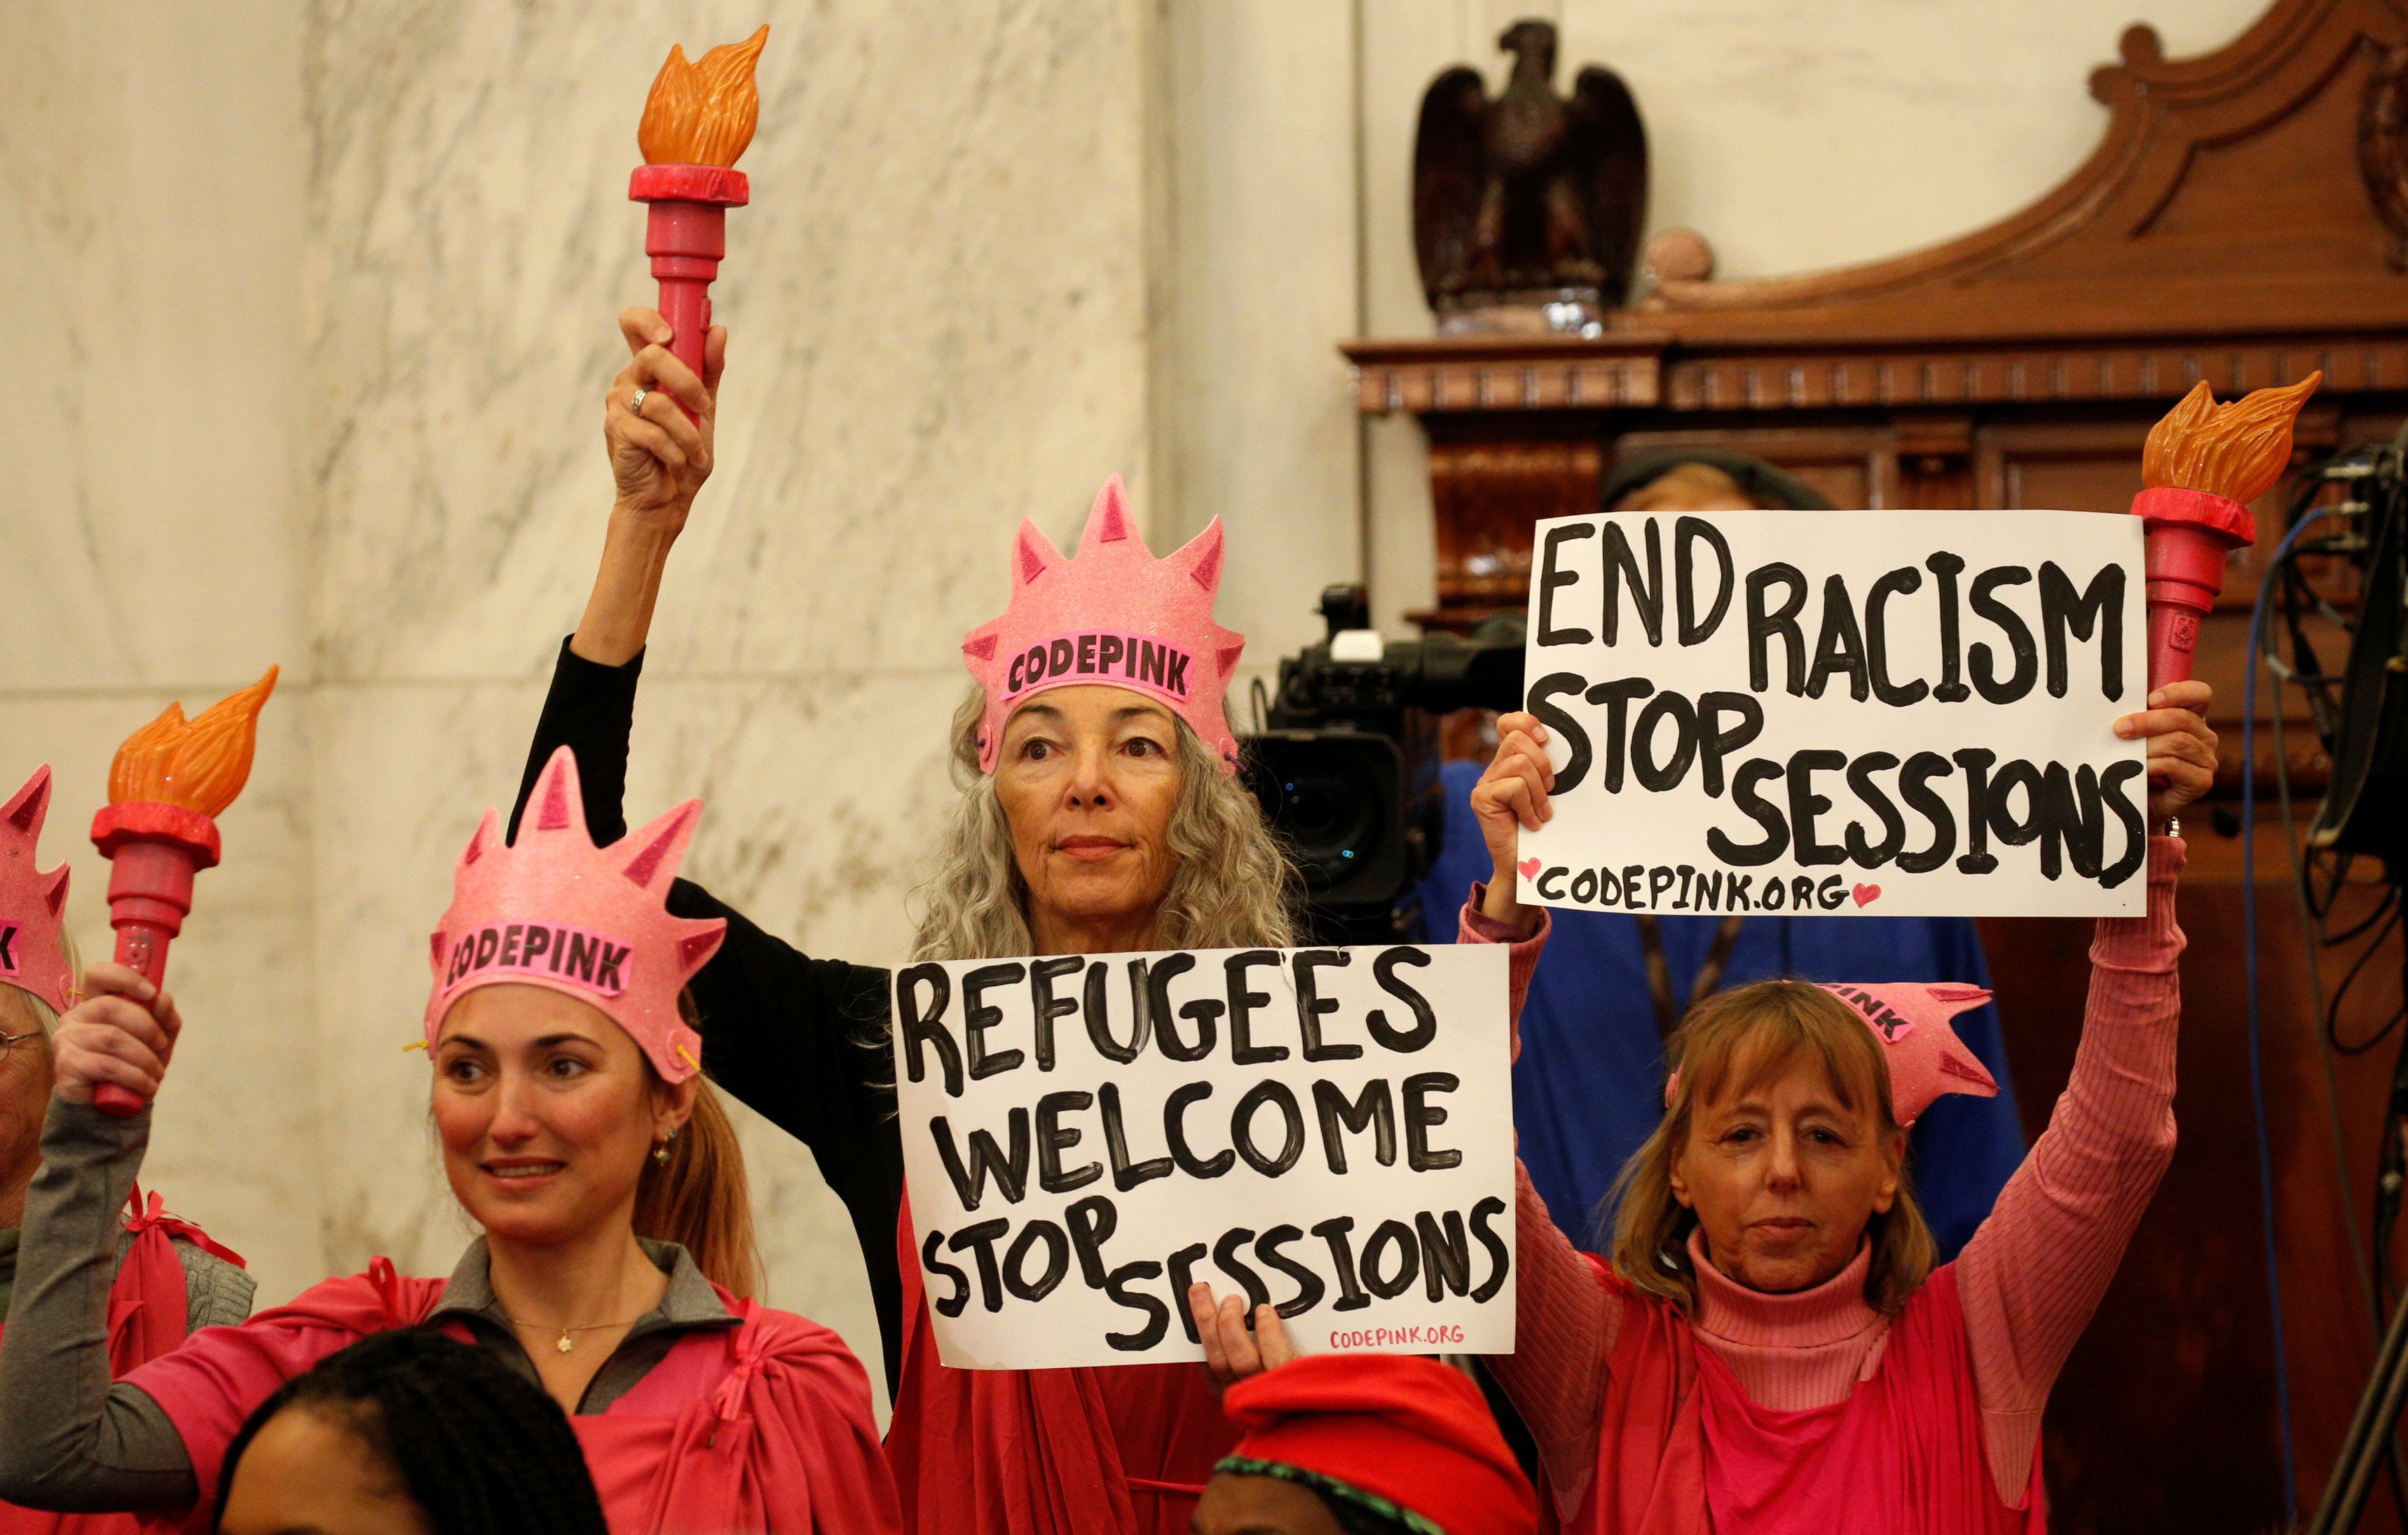 Protesters hold signs at the Senate Judiciary Committee confirmation hearing for U.S. Sen. Jeff Sessions (R-AL) to become U.S. attorney general on Capitol Hill in Washington, U.S. January 10, 2017. REUTERS/Kevin Lamarque